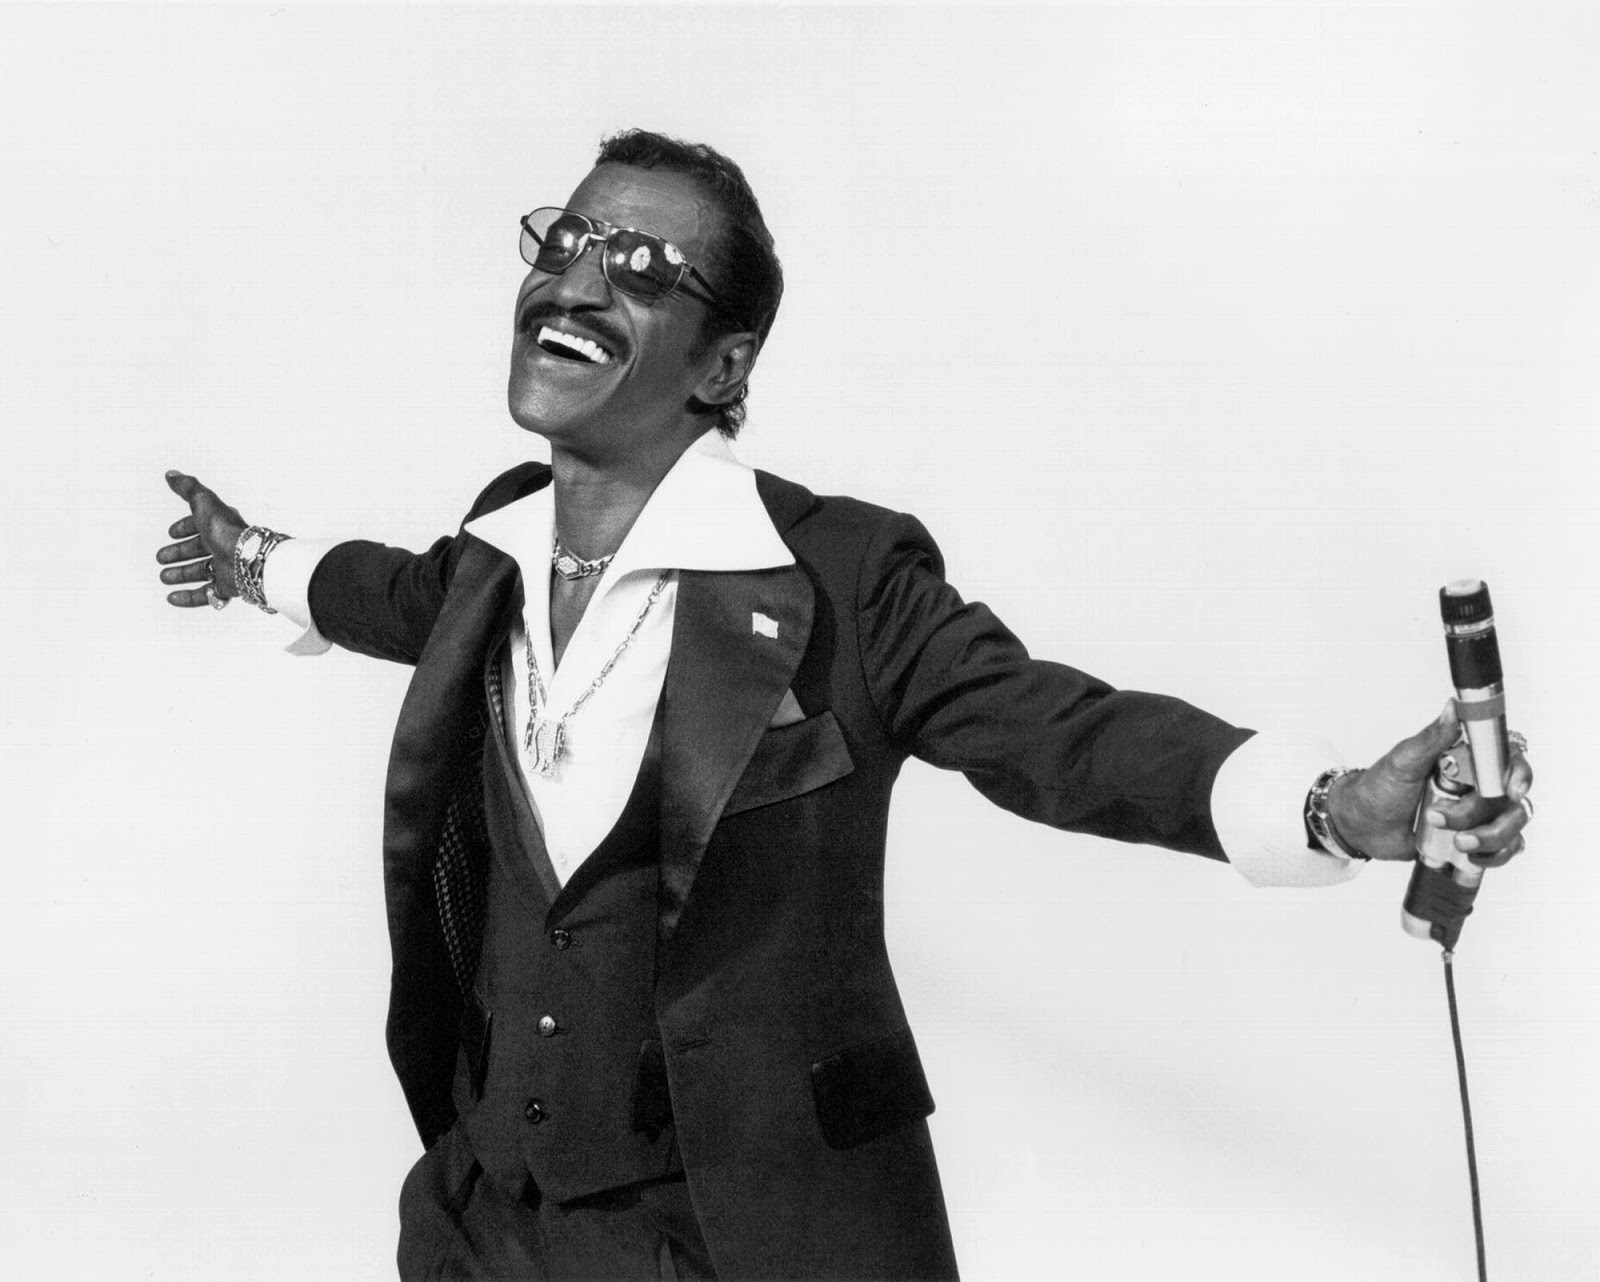 http://jazzdocu.blogspot.it/2015/04/sammy-davis-jr-live-in-australia-1979.html